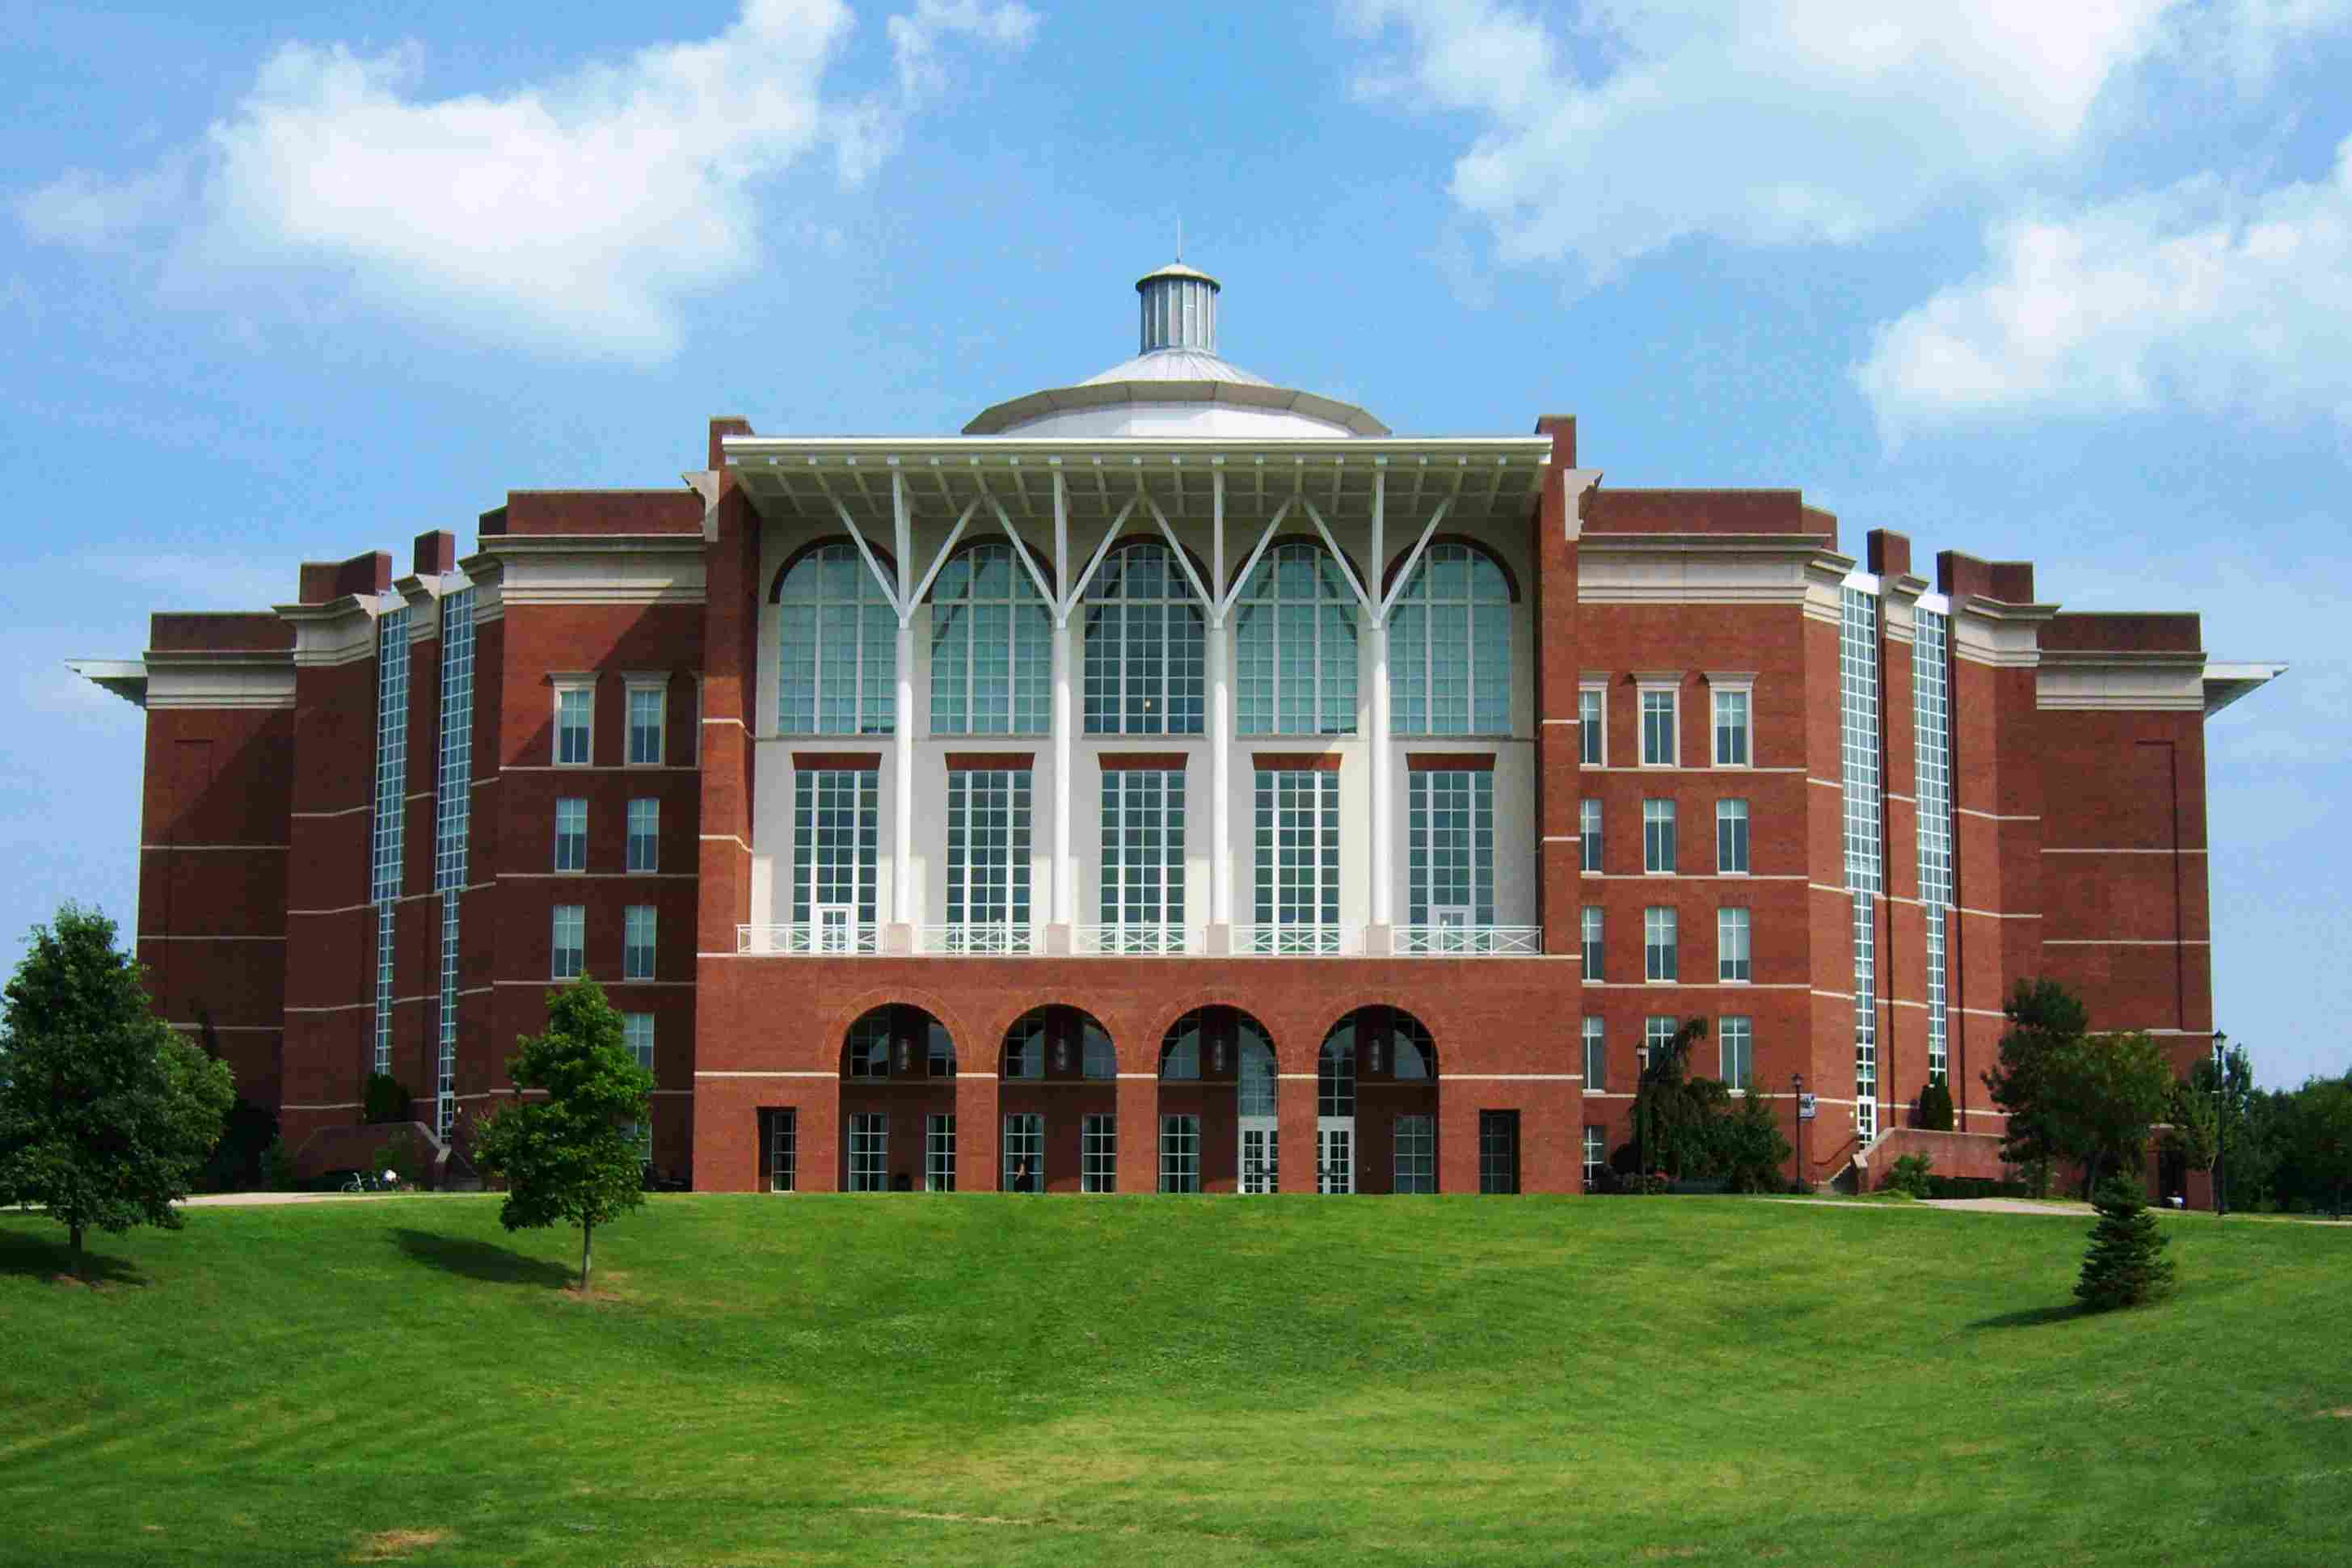 Young Library at the University of Kentucky